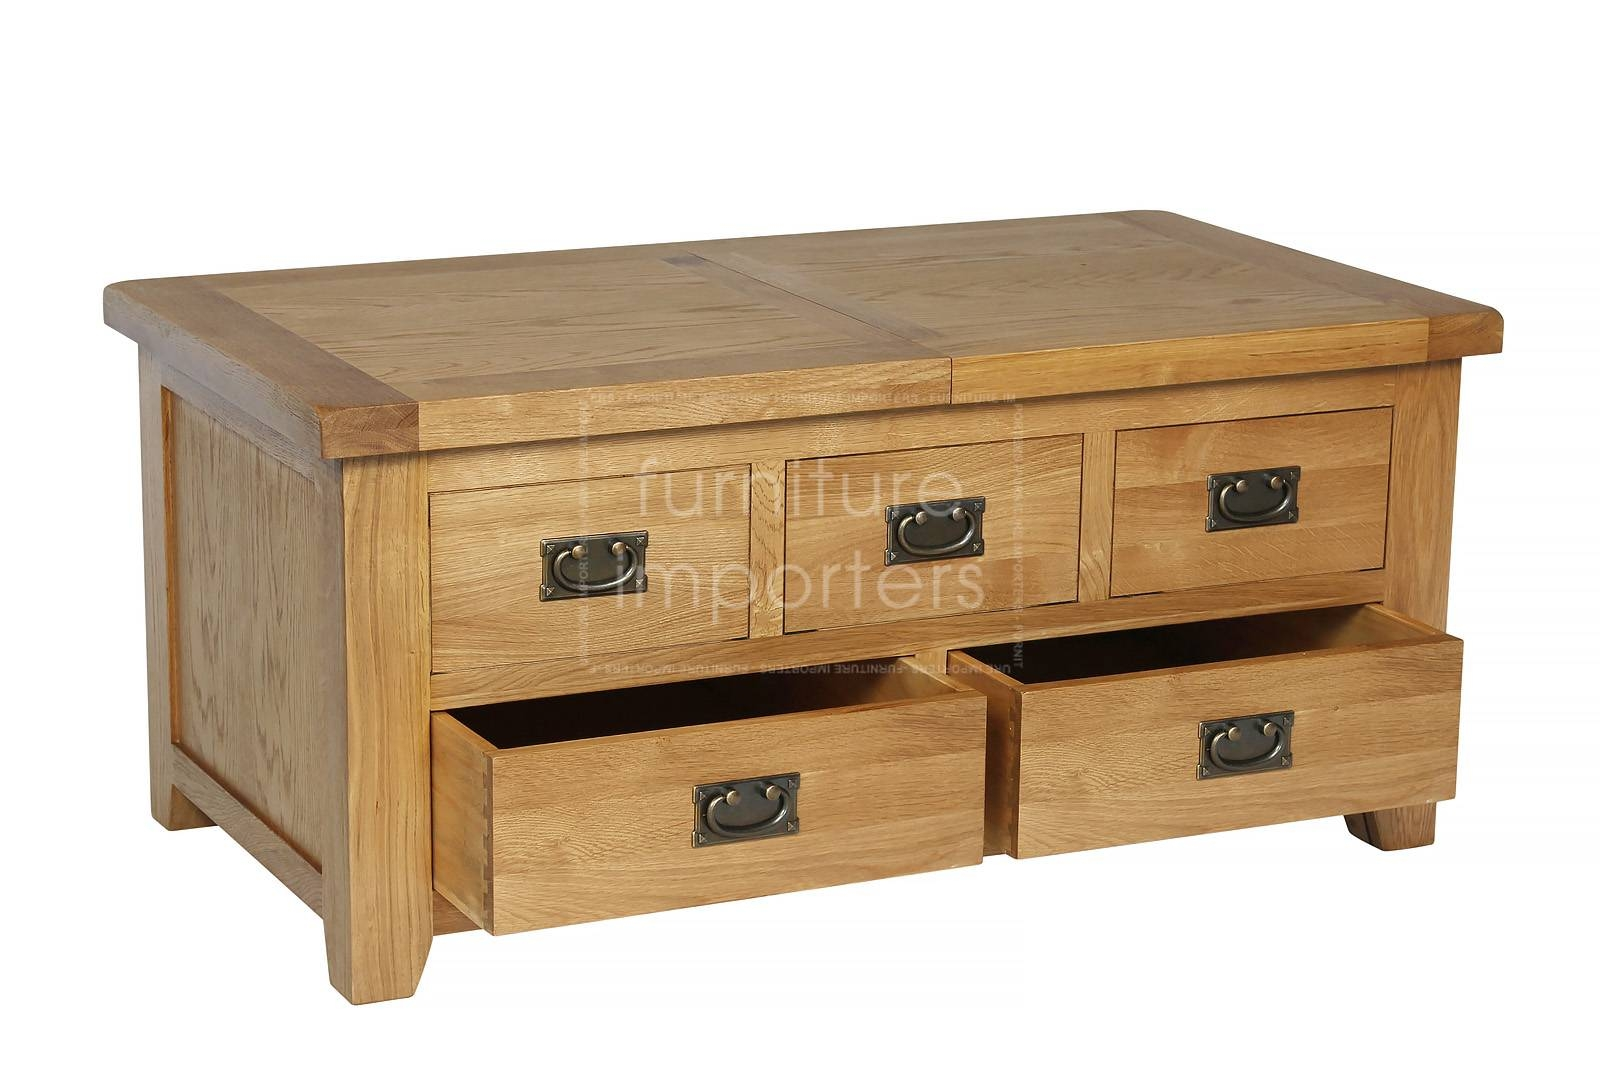 Trewick Oak Storage Unit | Trewick Oak Range | Furniture Importers inside Oak Coffee Tables With Storage (Image 14 of 15)